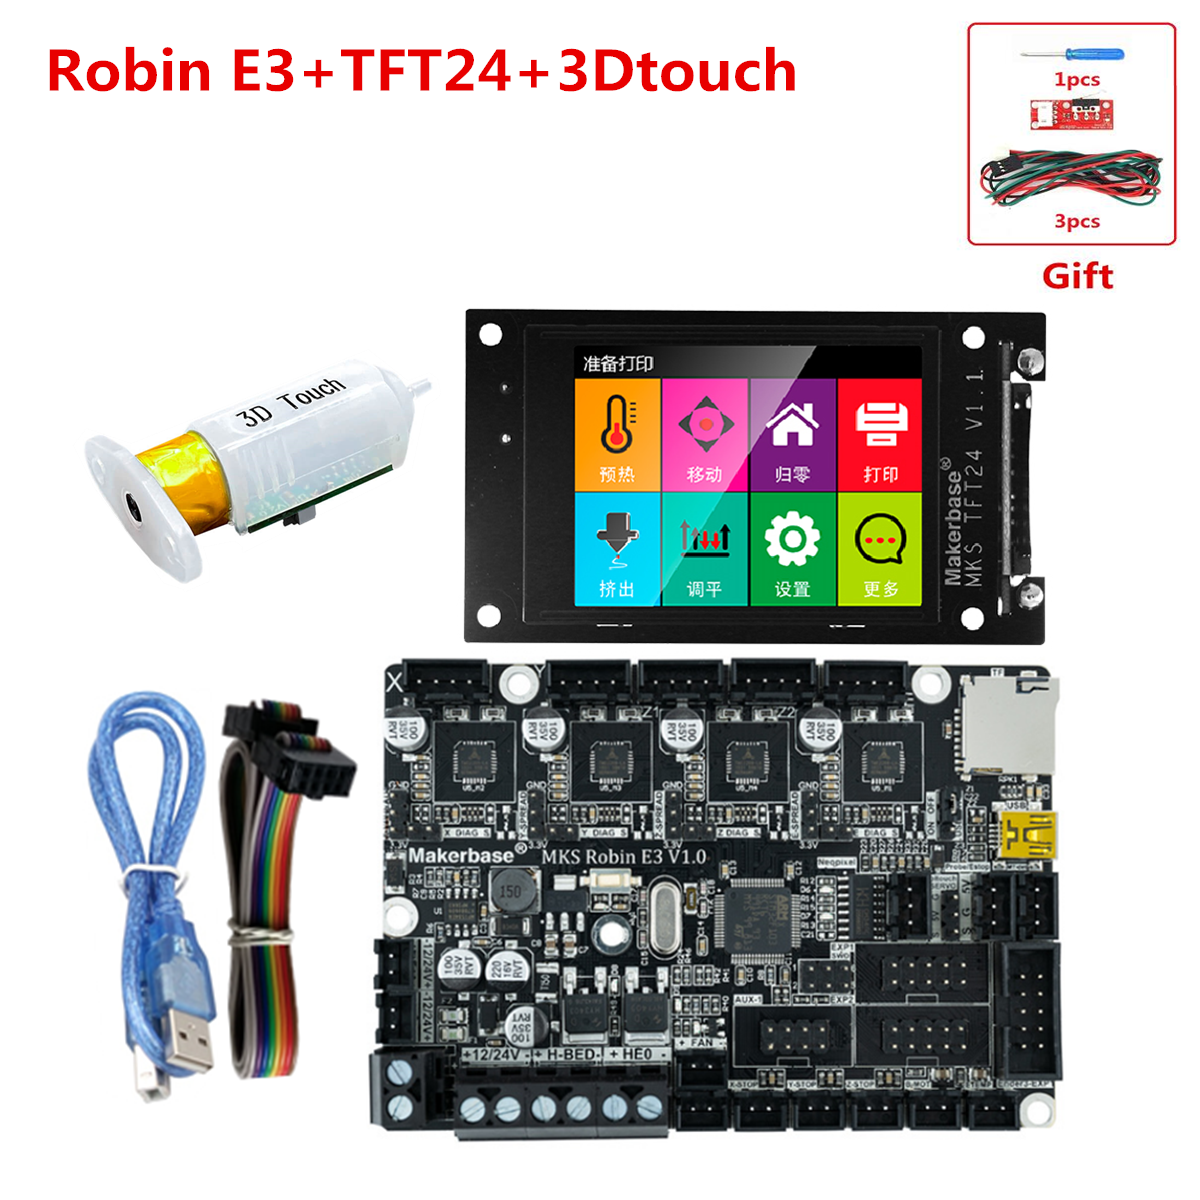 MKS Robin E3 Motherboard Creality CR-10 Replacement Parts MKS TFT 24 Touch Screen MKS TFT WIFI Controller Bed Leveling Sensor